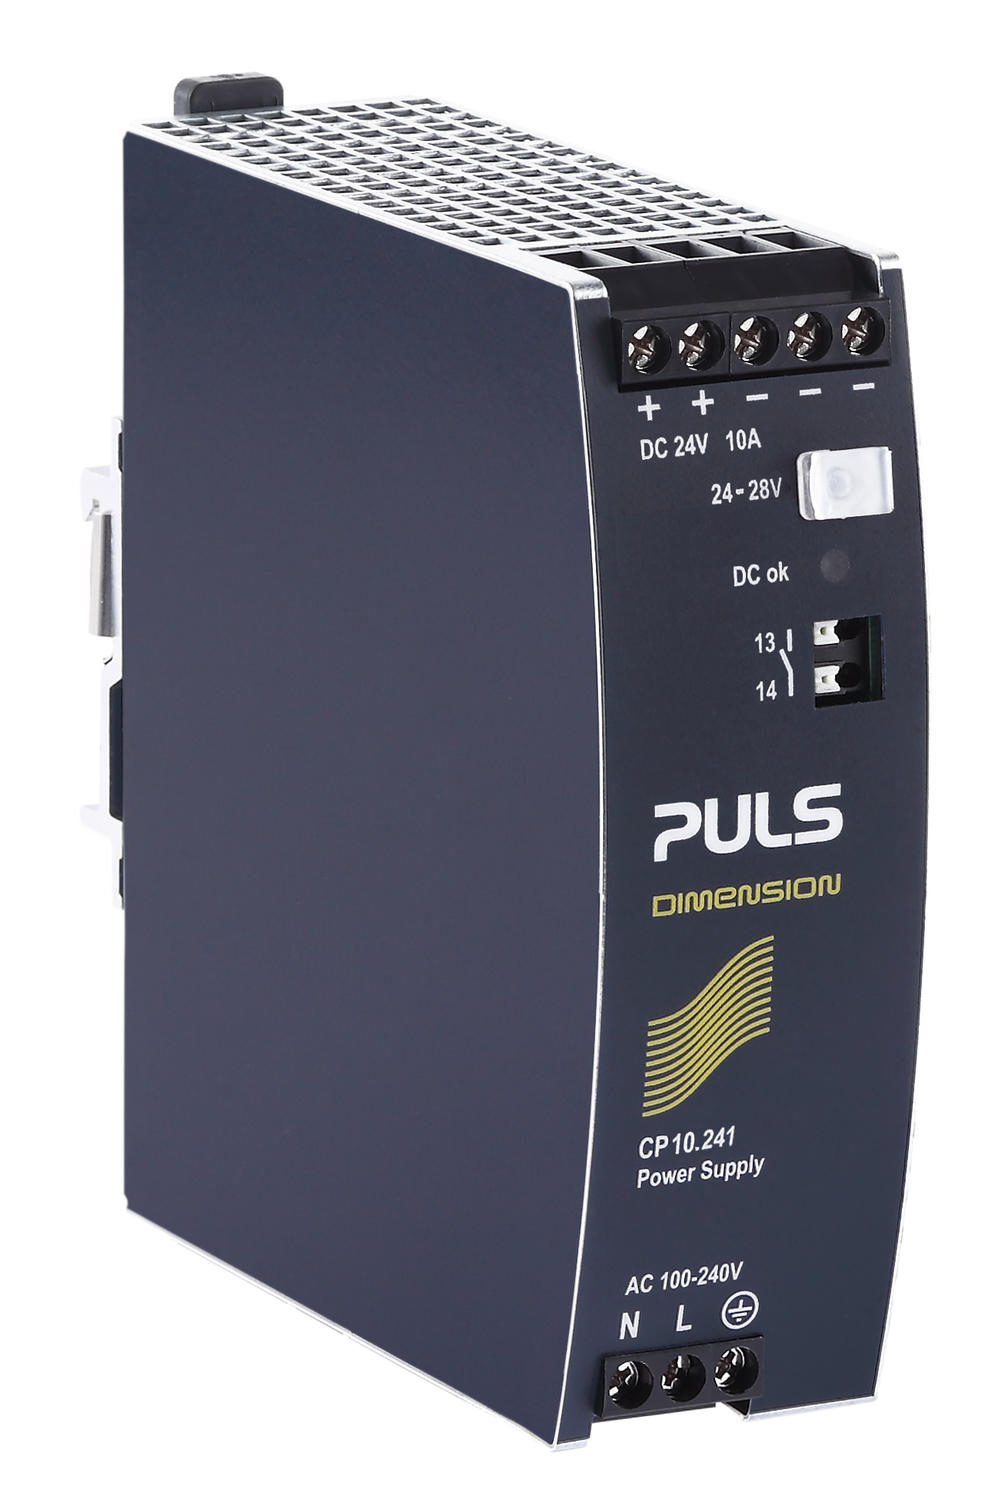 Power supply 1-phase, 24 V dc Series Dimension C, Generation 2